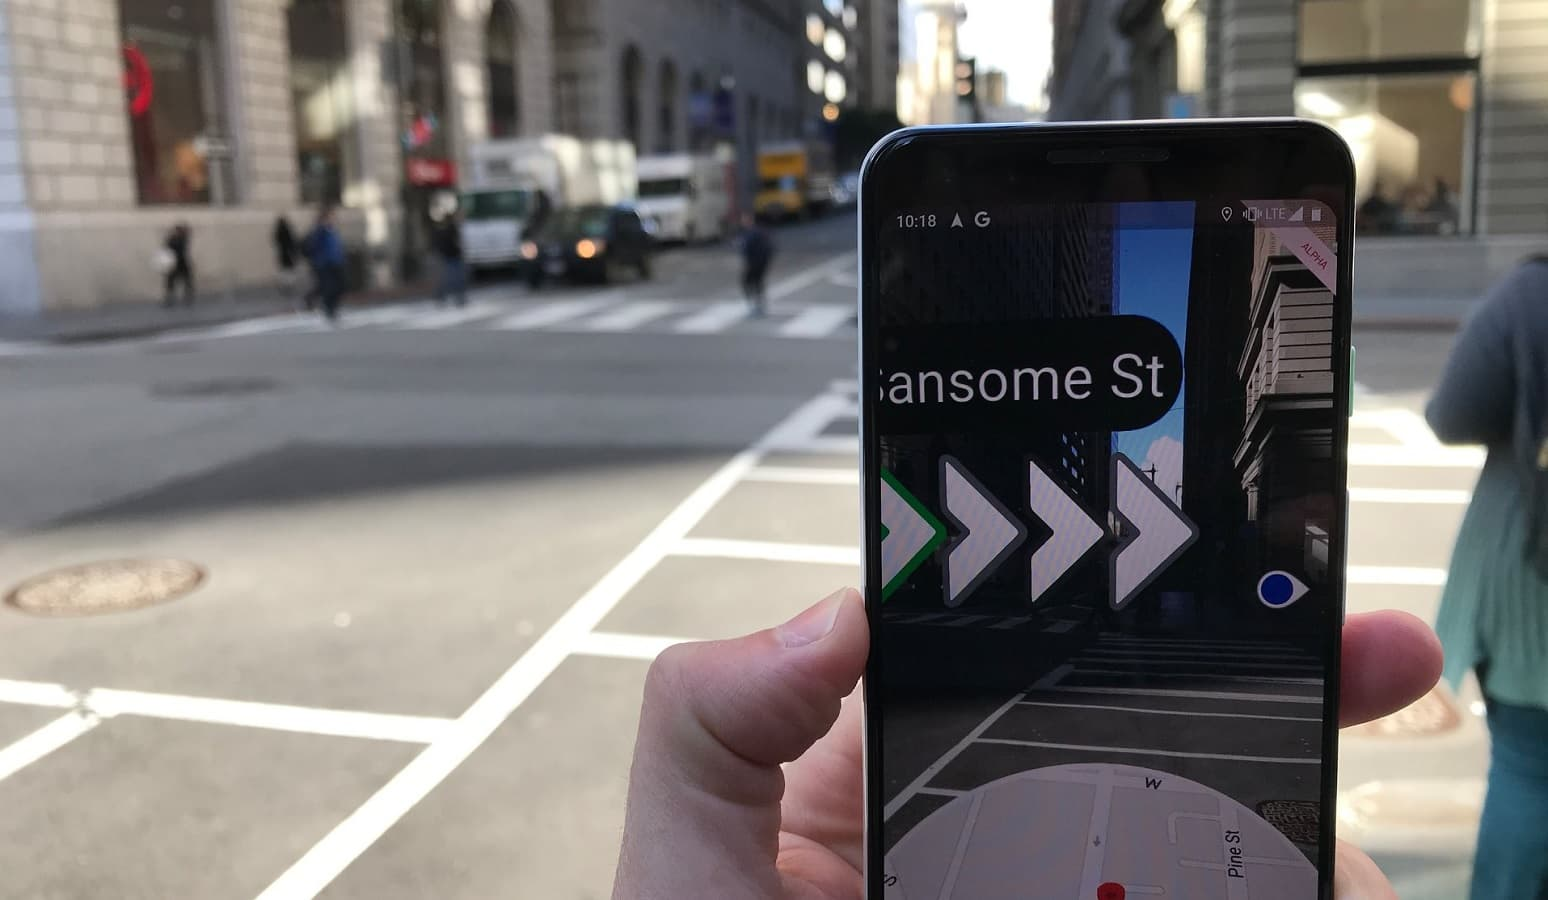 Here's how to use the new Google Maps AR feature